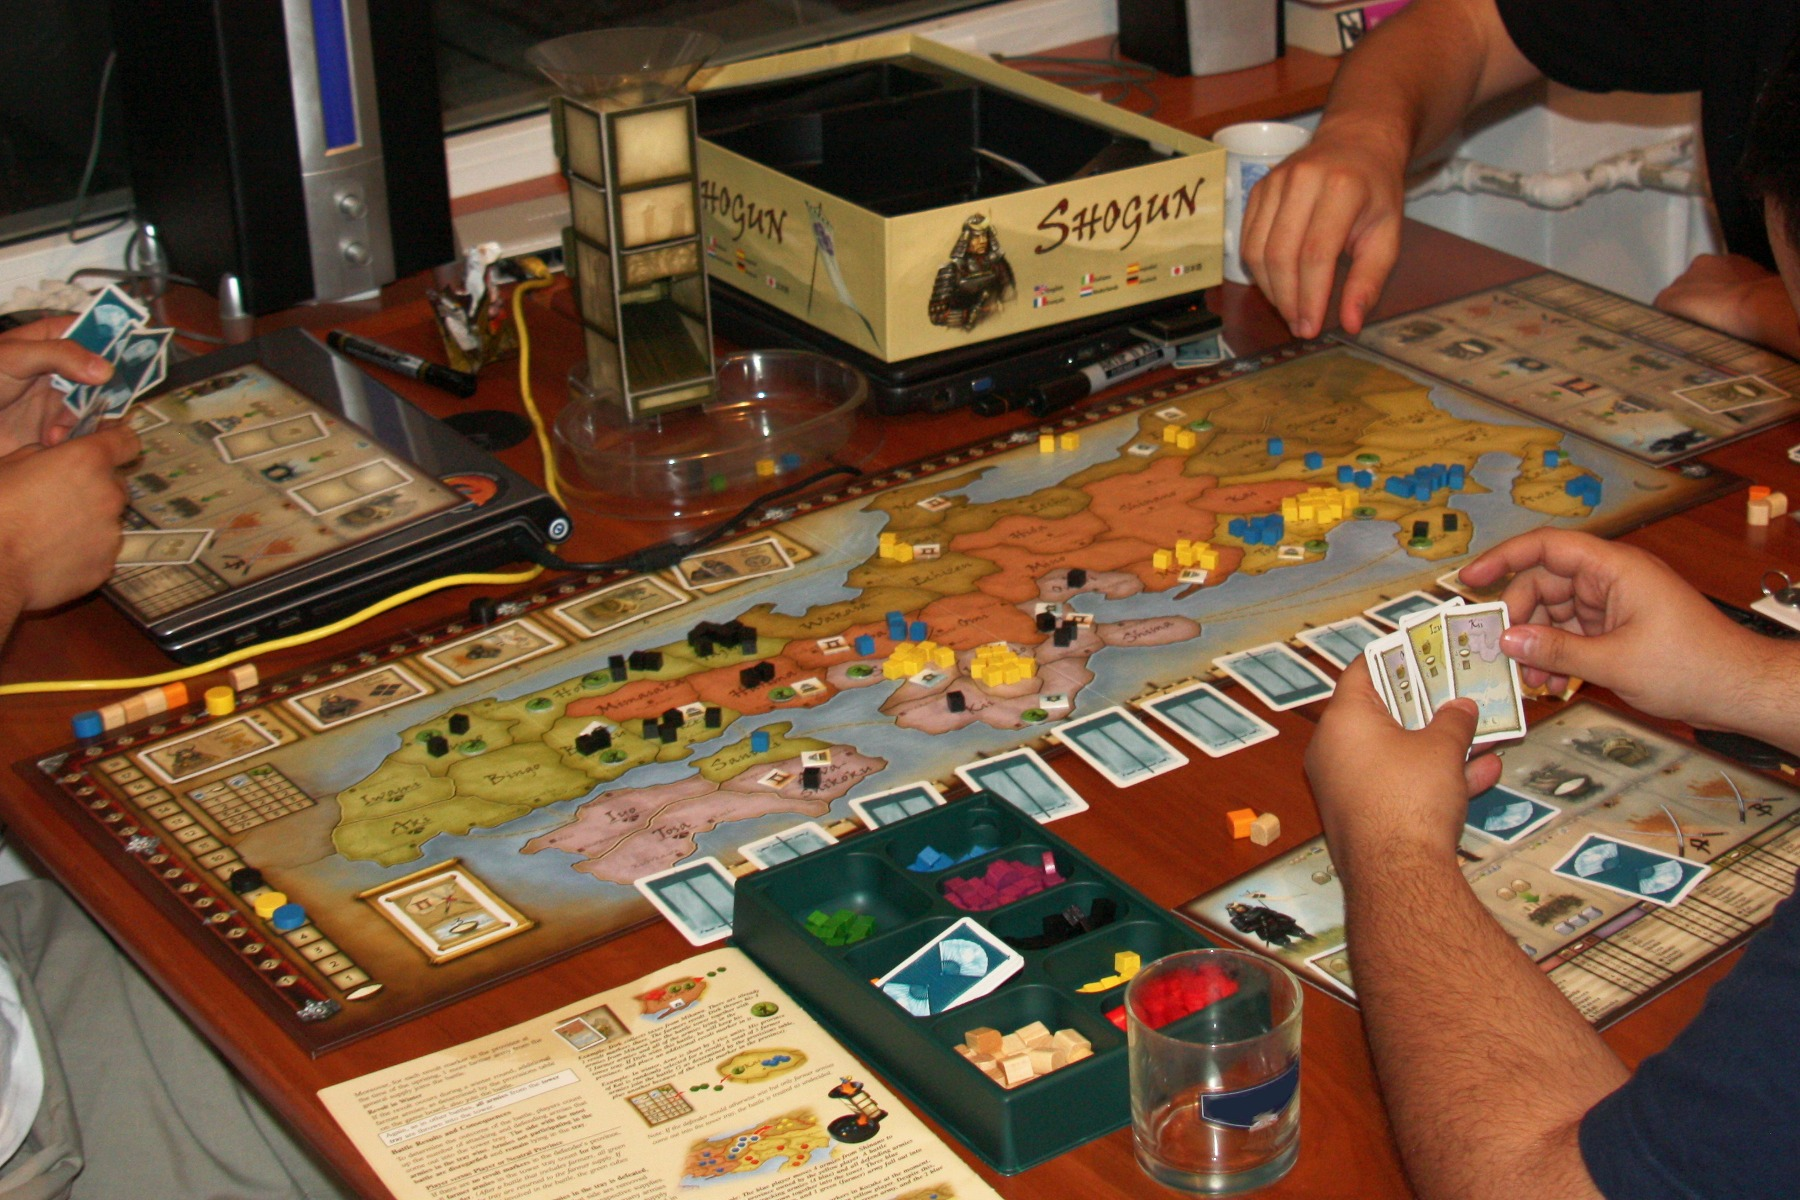 Playing tabletop games - Family Board Games Share A Laugh And Learn A Little Something At The Same Time